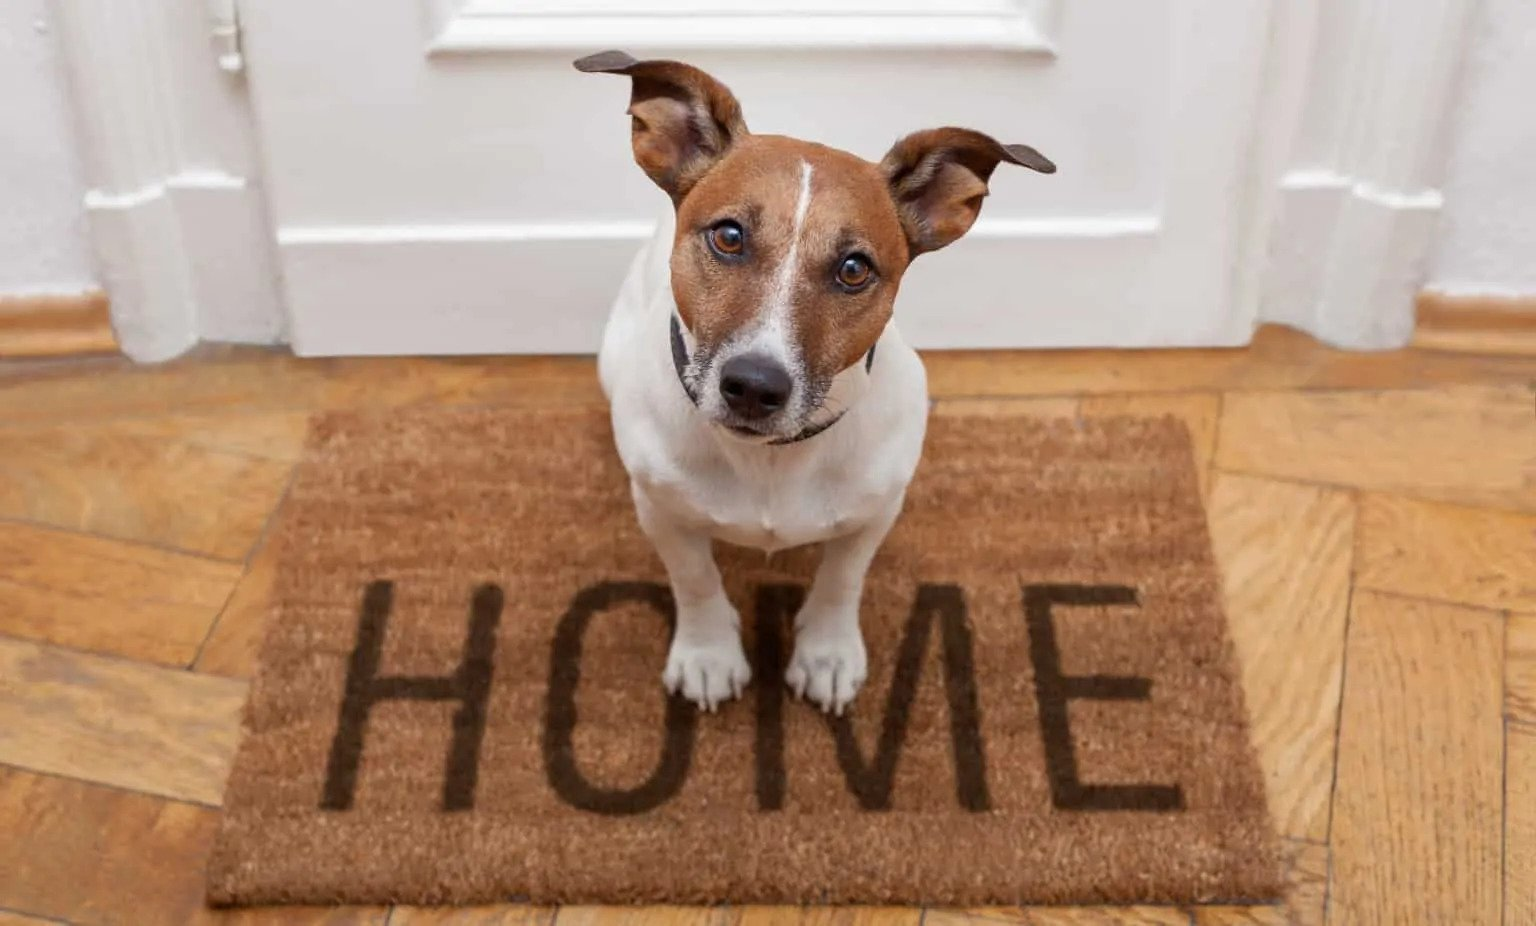 Bringing A Dog Home To A Safe Environment